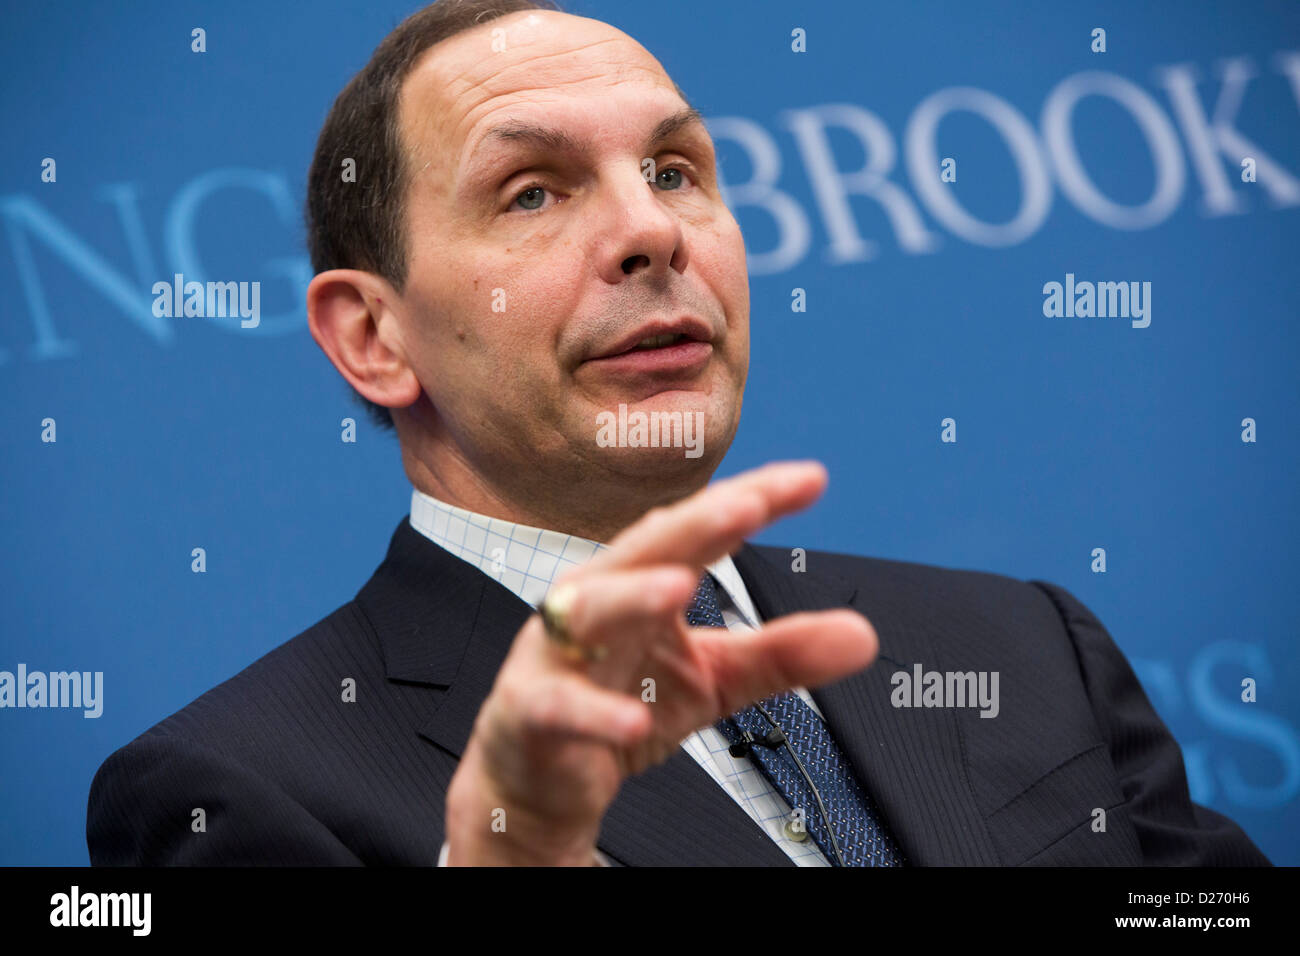 Robert McDonald, Chairman, President and CEO of Procter & Gamble.  - Stock Image